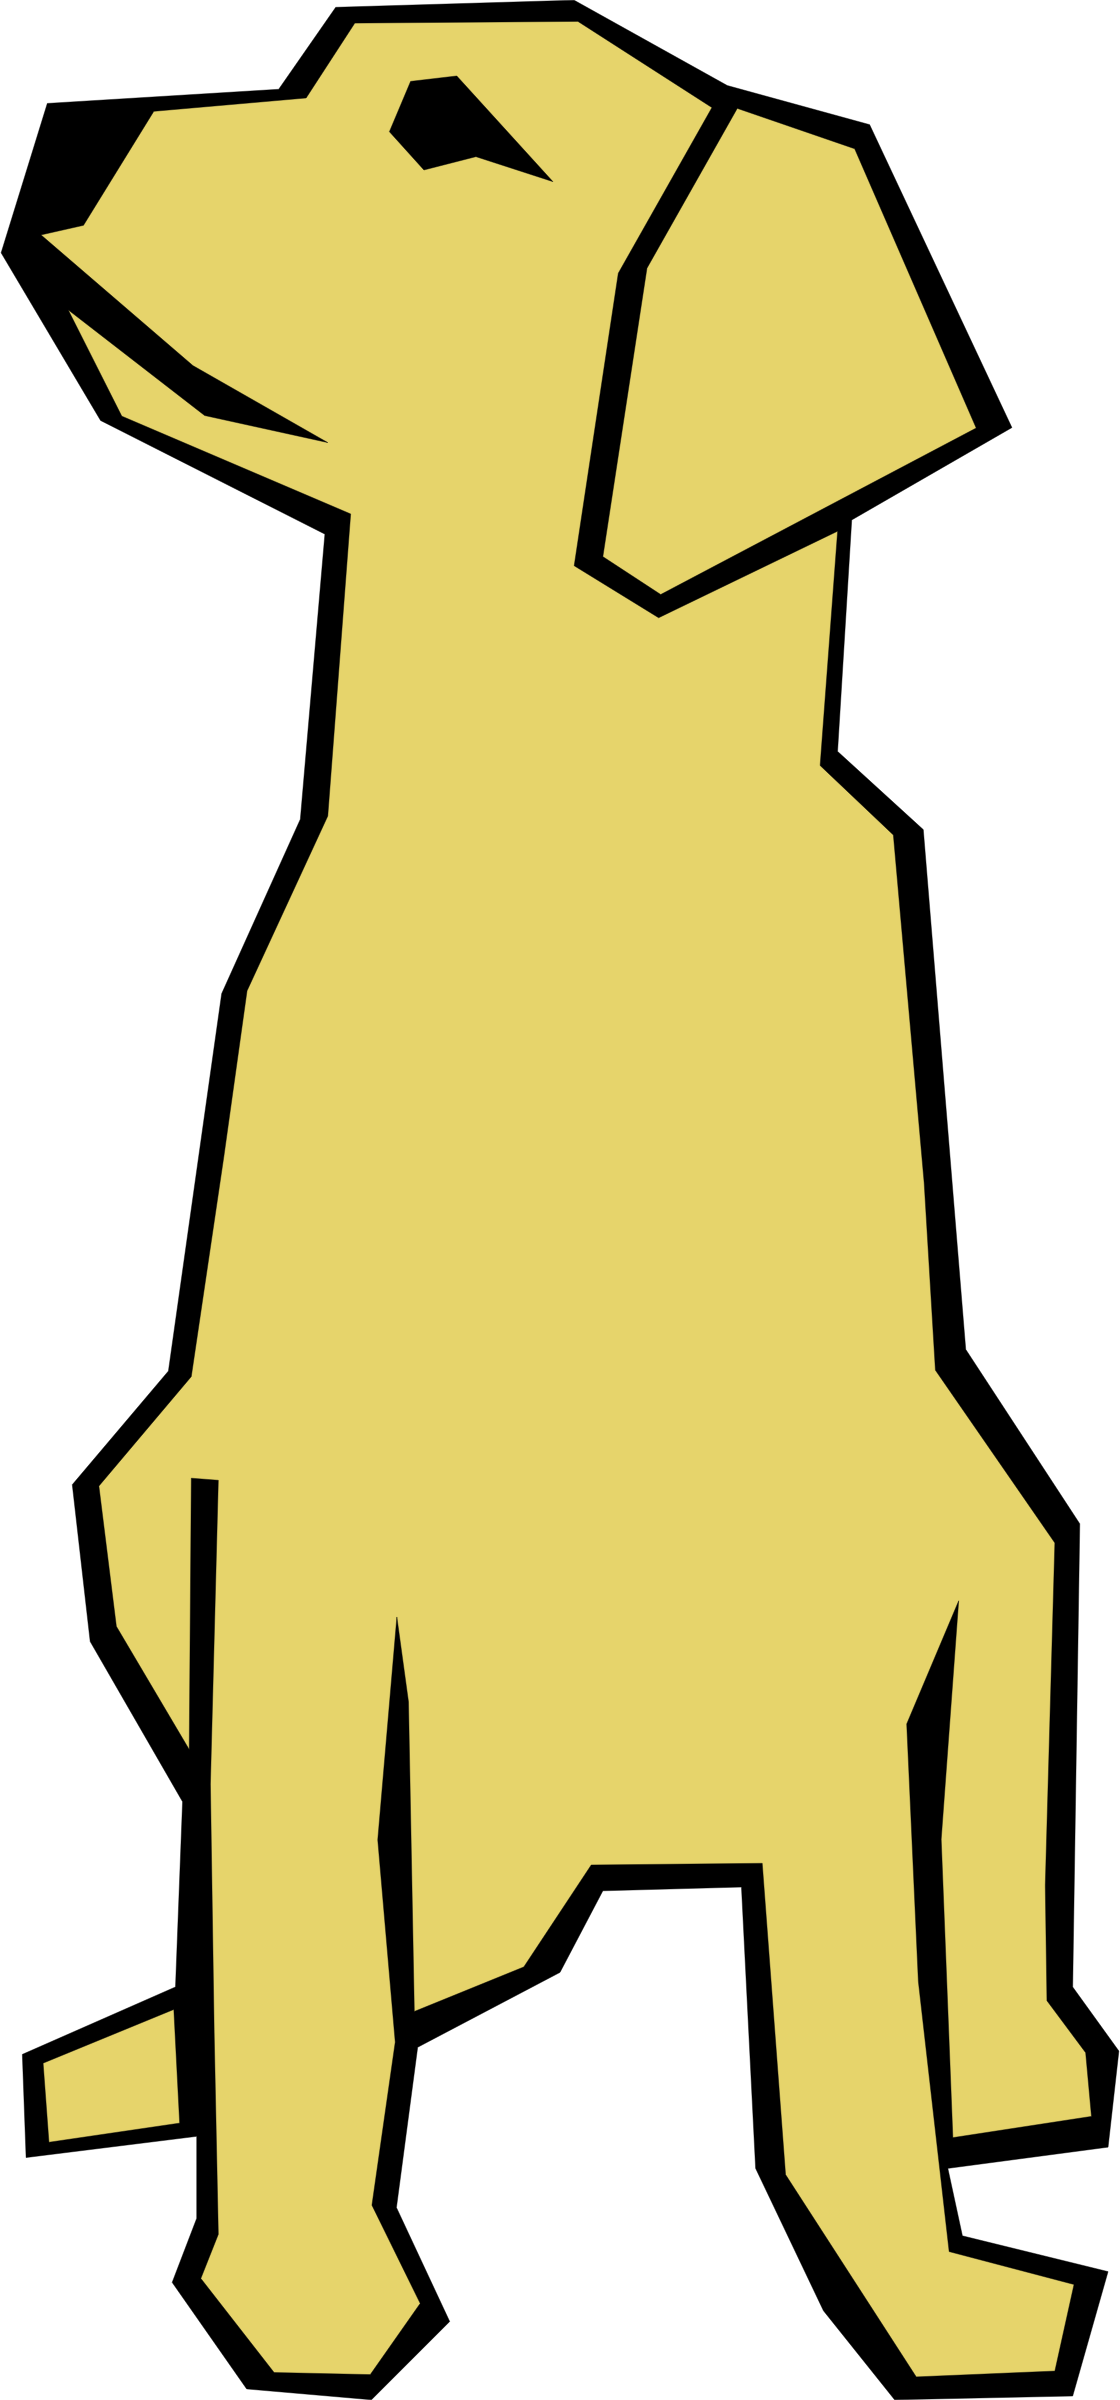 Drawing big image png. Clipart dog simple